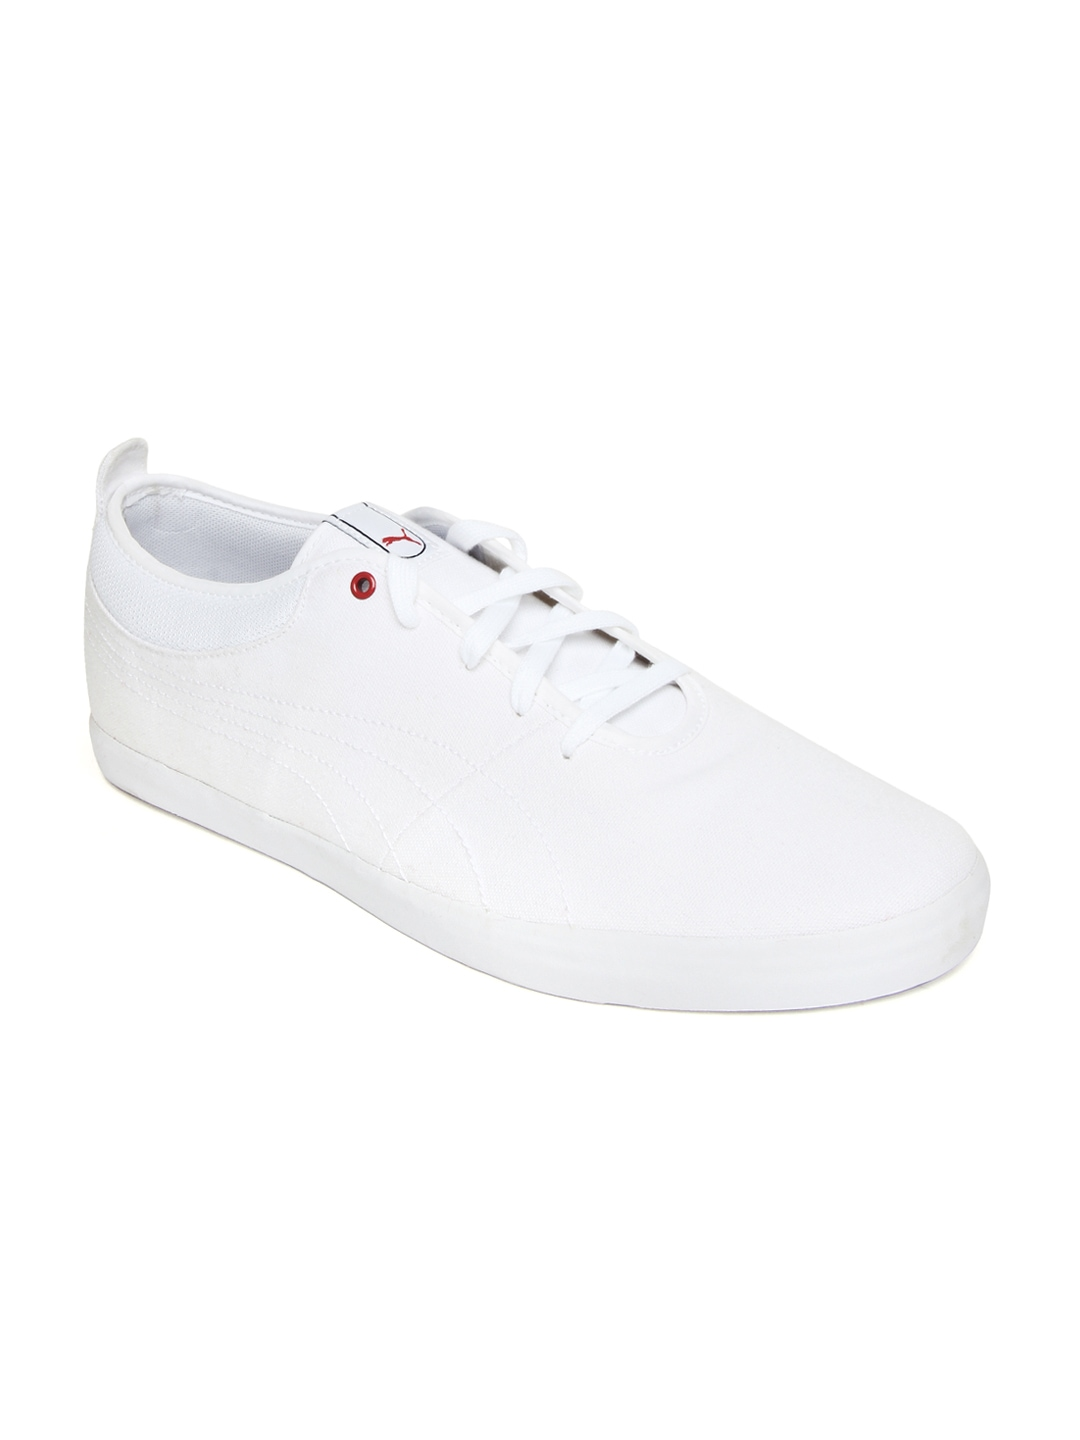 01ccef112ec8 white pumas men cheap   OFF64% Discounted